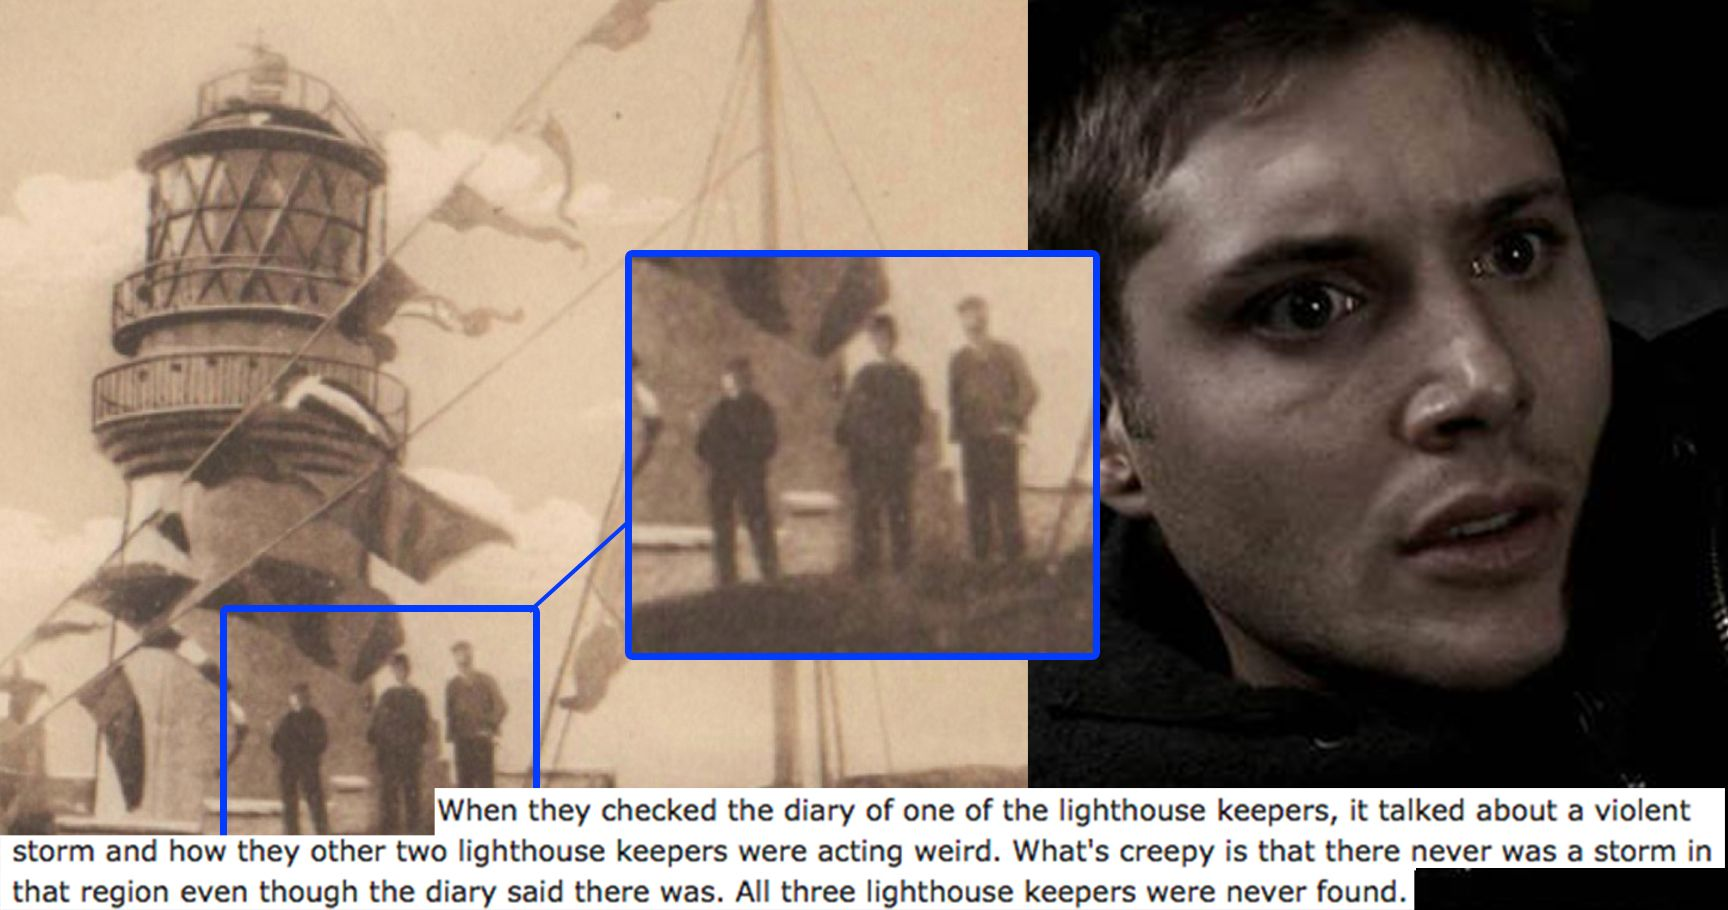 Best Of Reddit: 15 Disturbing Missing Person Cases That Will Give Anyone The Creeps